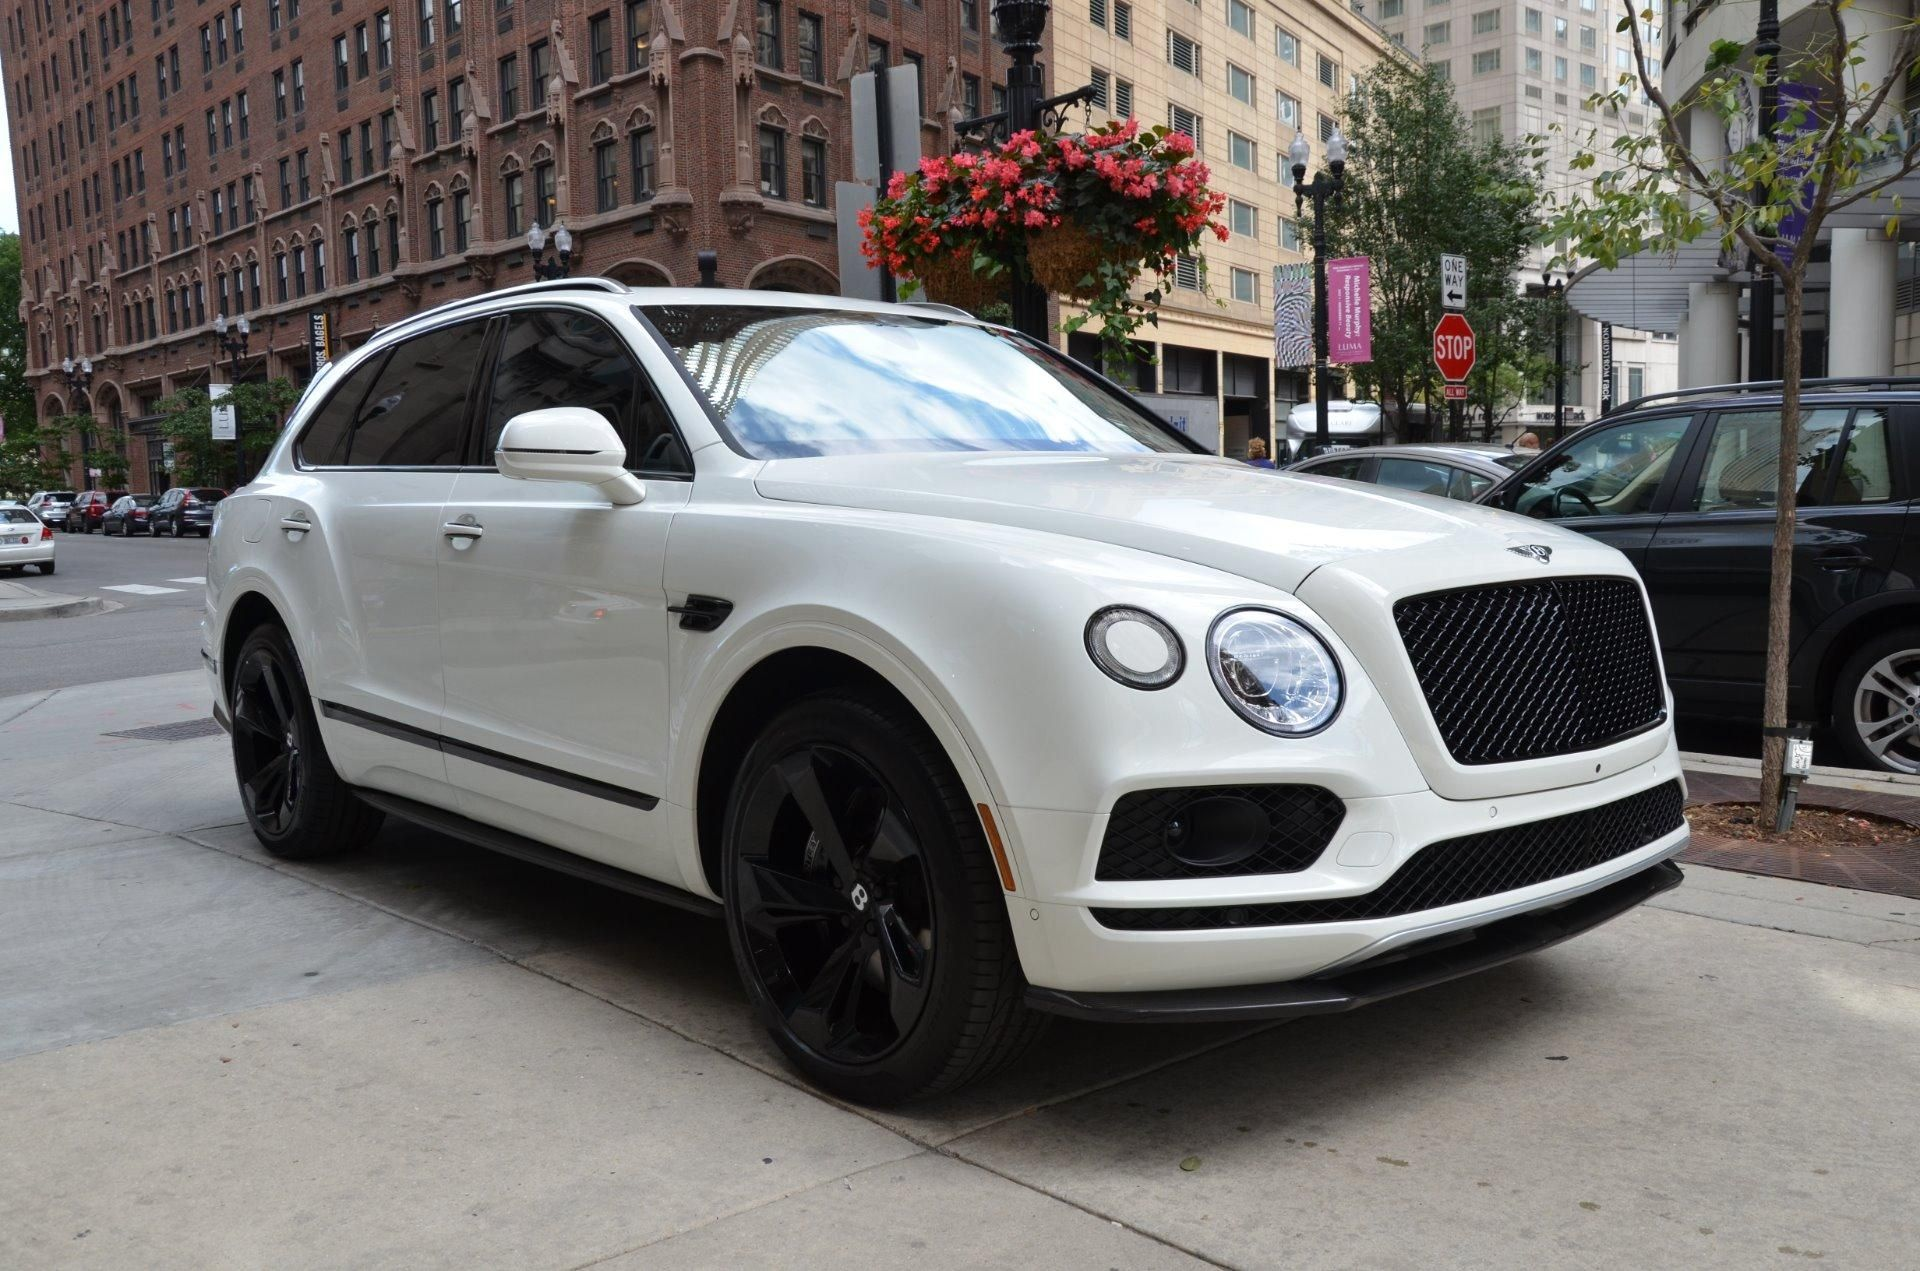 value used car prices new cars bentley continental price paid generic sale placeholder image